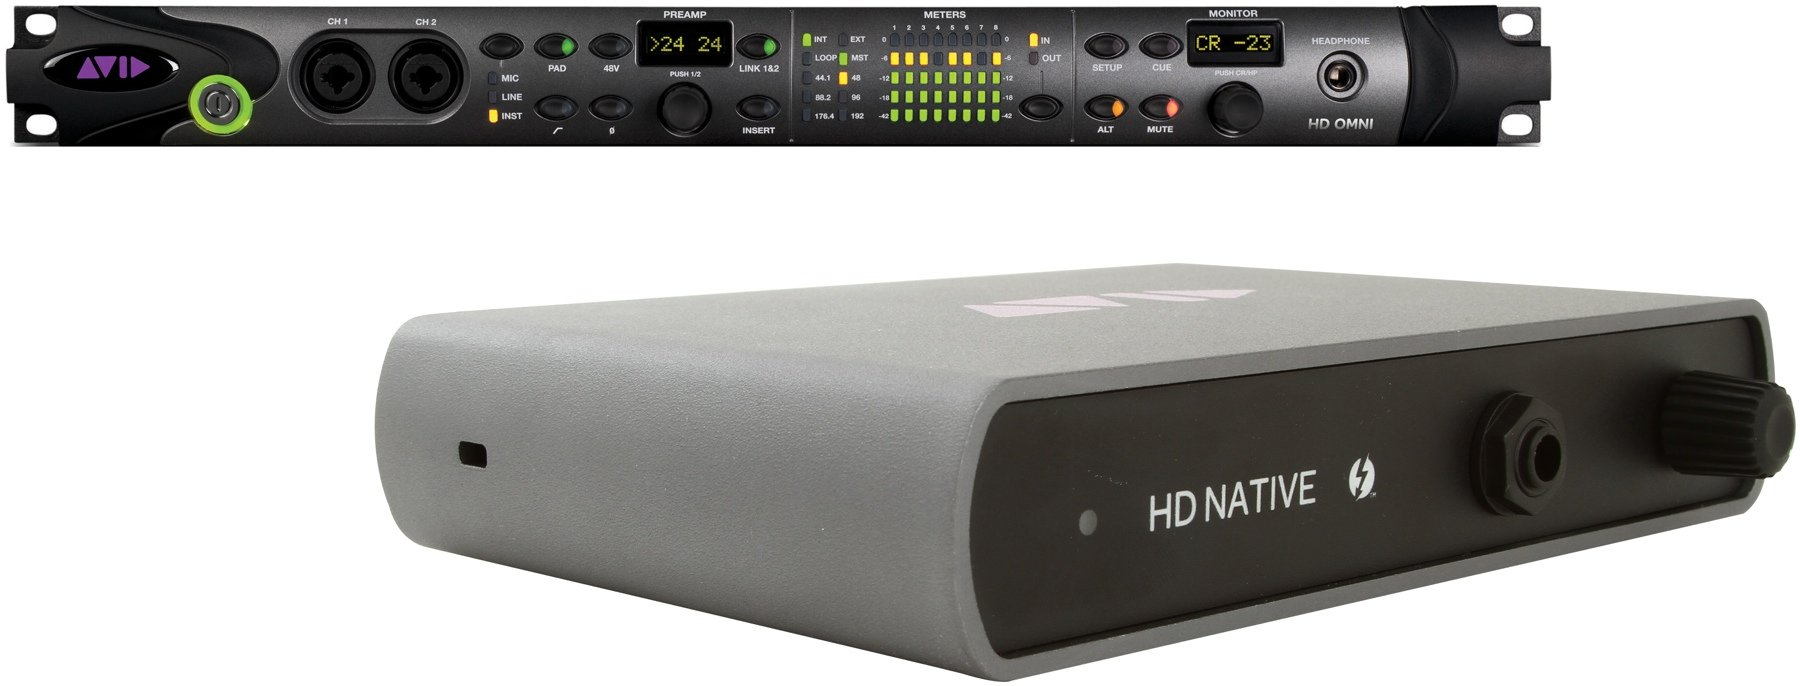 Avid Pro Tools | HD Systems Buying Guide | Sweetwater